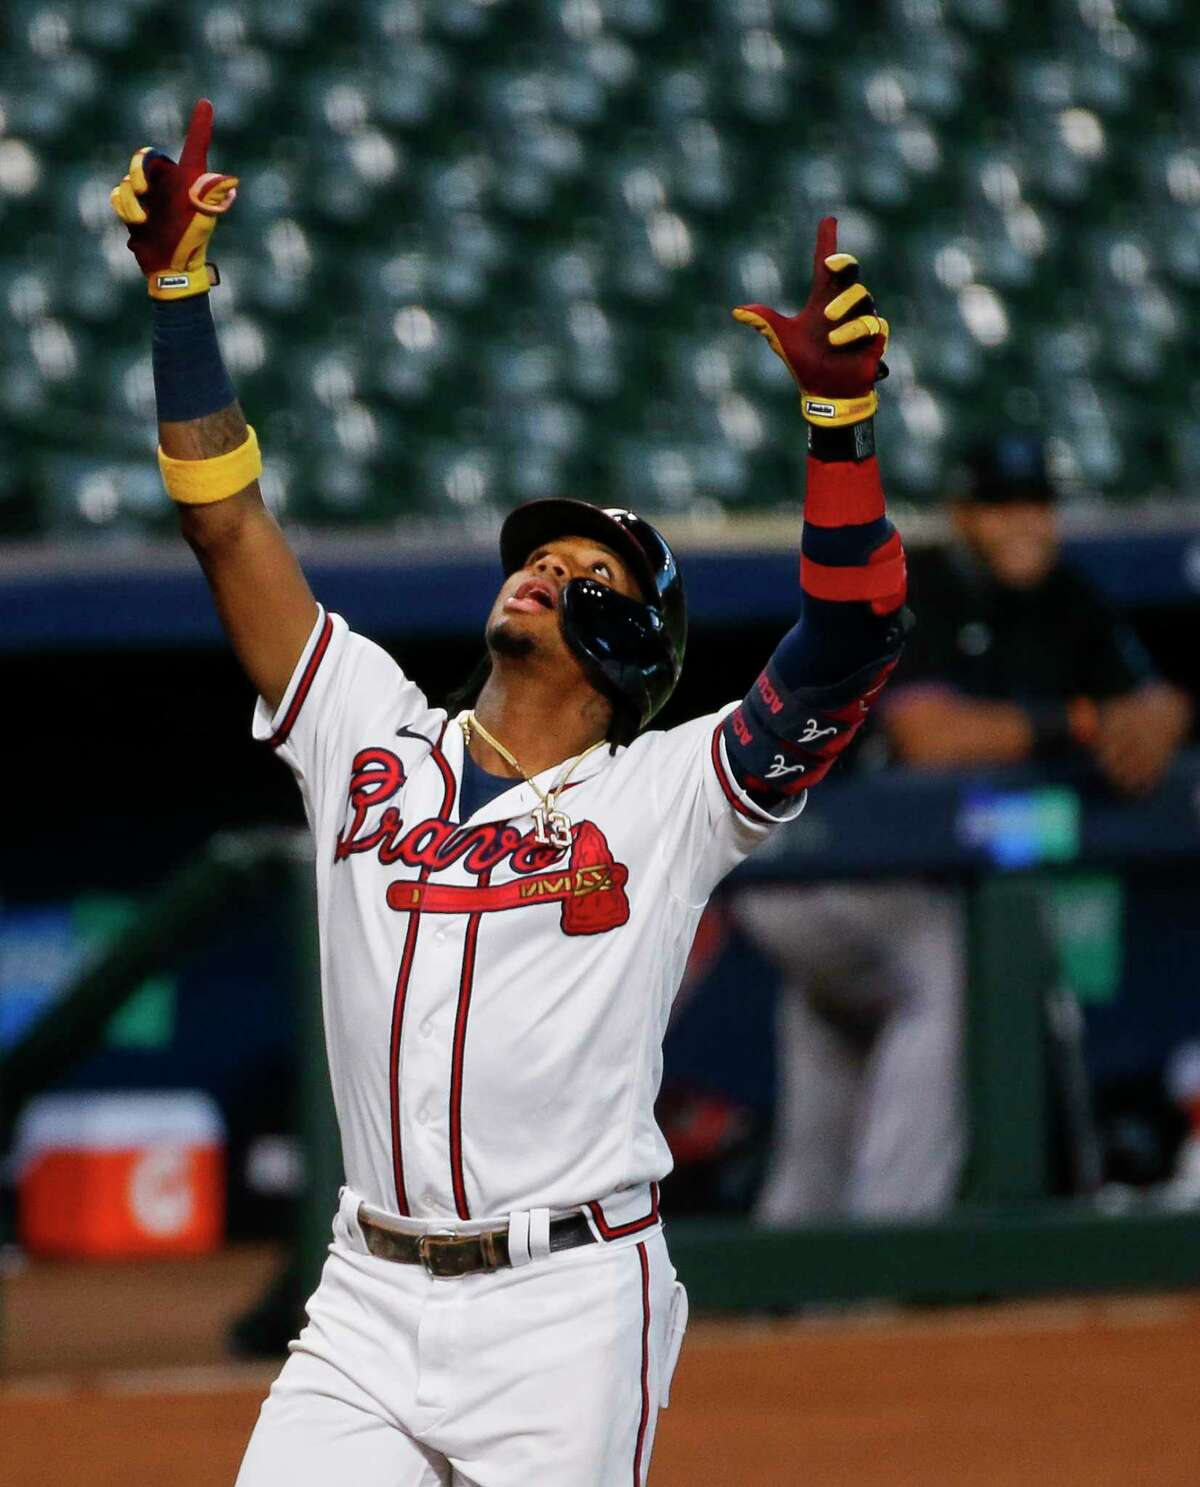 Atlanta Braves center fielder Ronald Acuña Jr. (13) celebrates after hitting a solo home run against the Miami Marlins, during the first inning in Game 1 of the National League Division Series at Minute Maid Park on Tuesday, Oct. 6, 2020, in Houston.